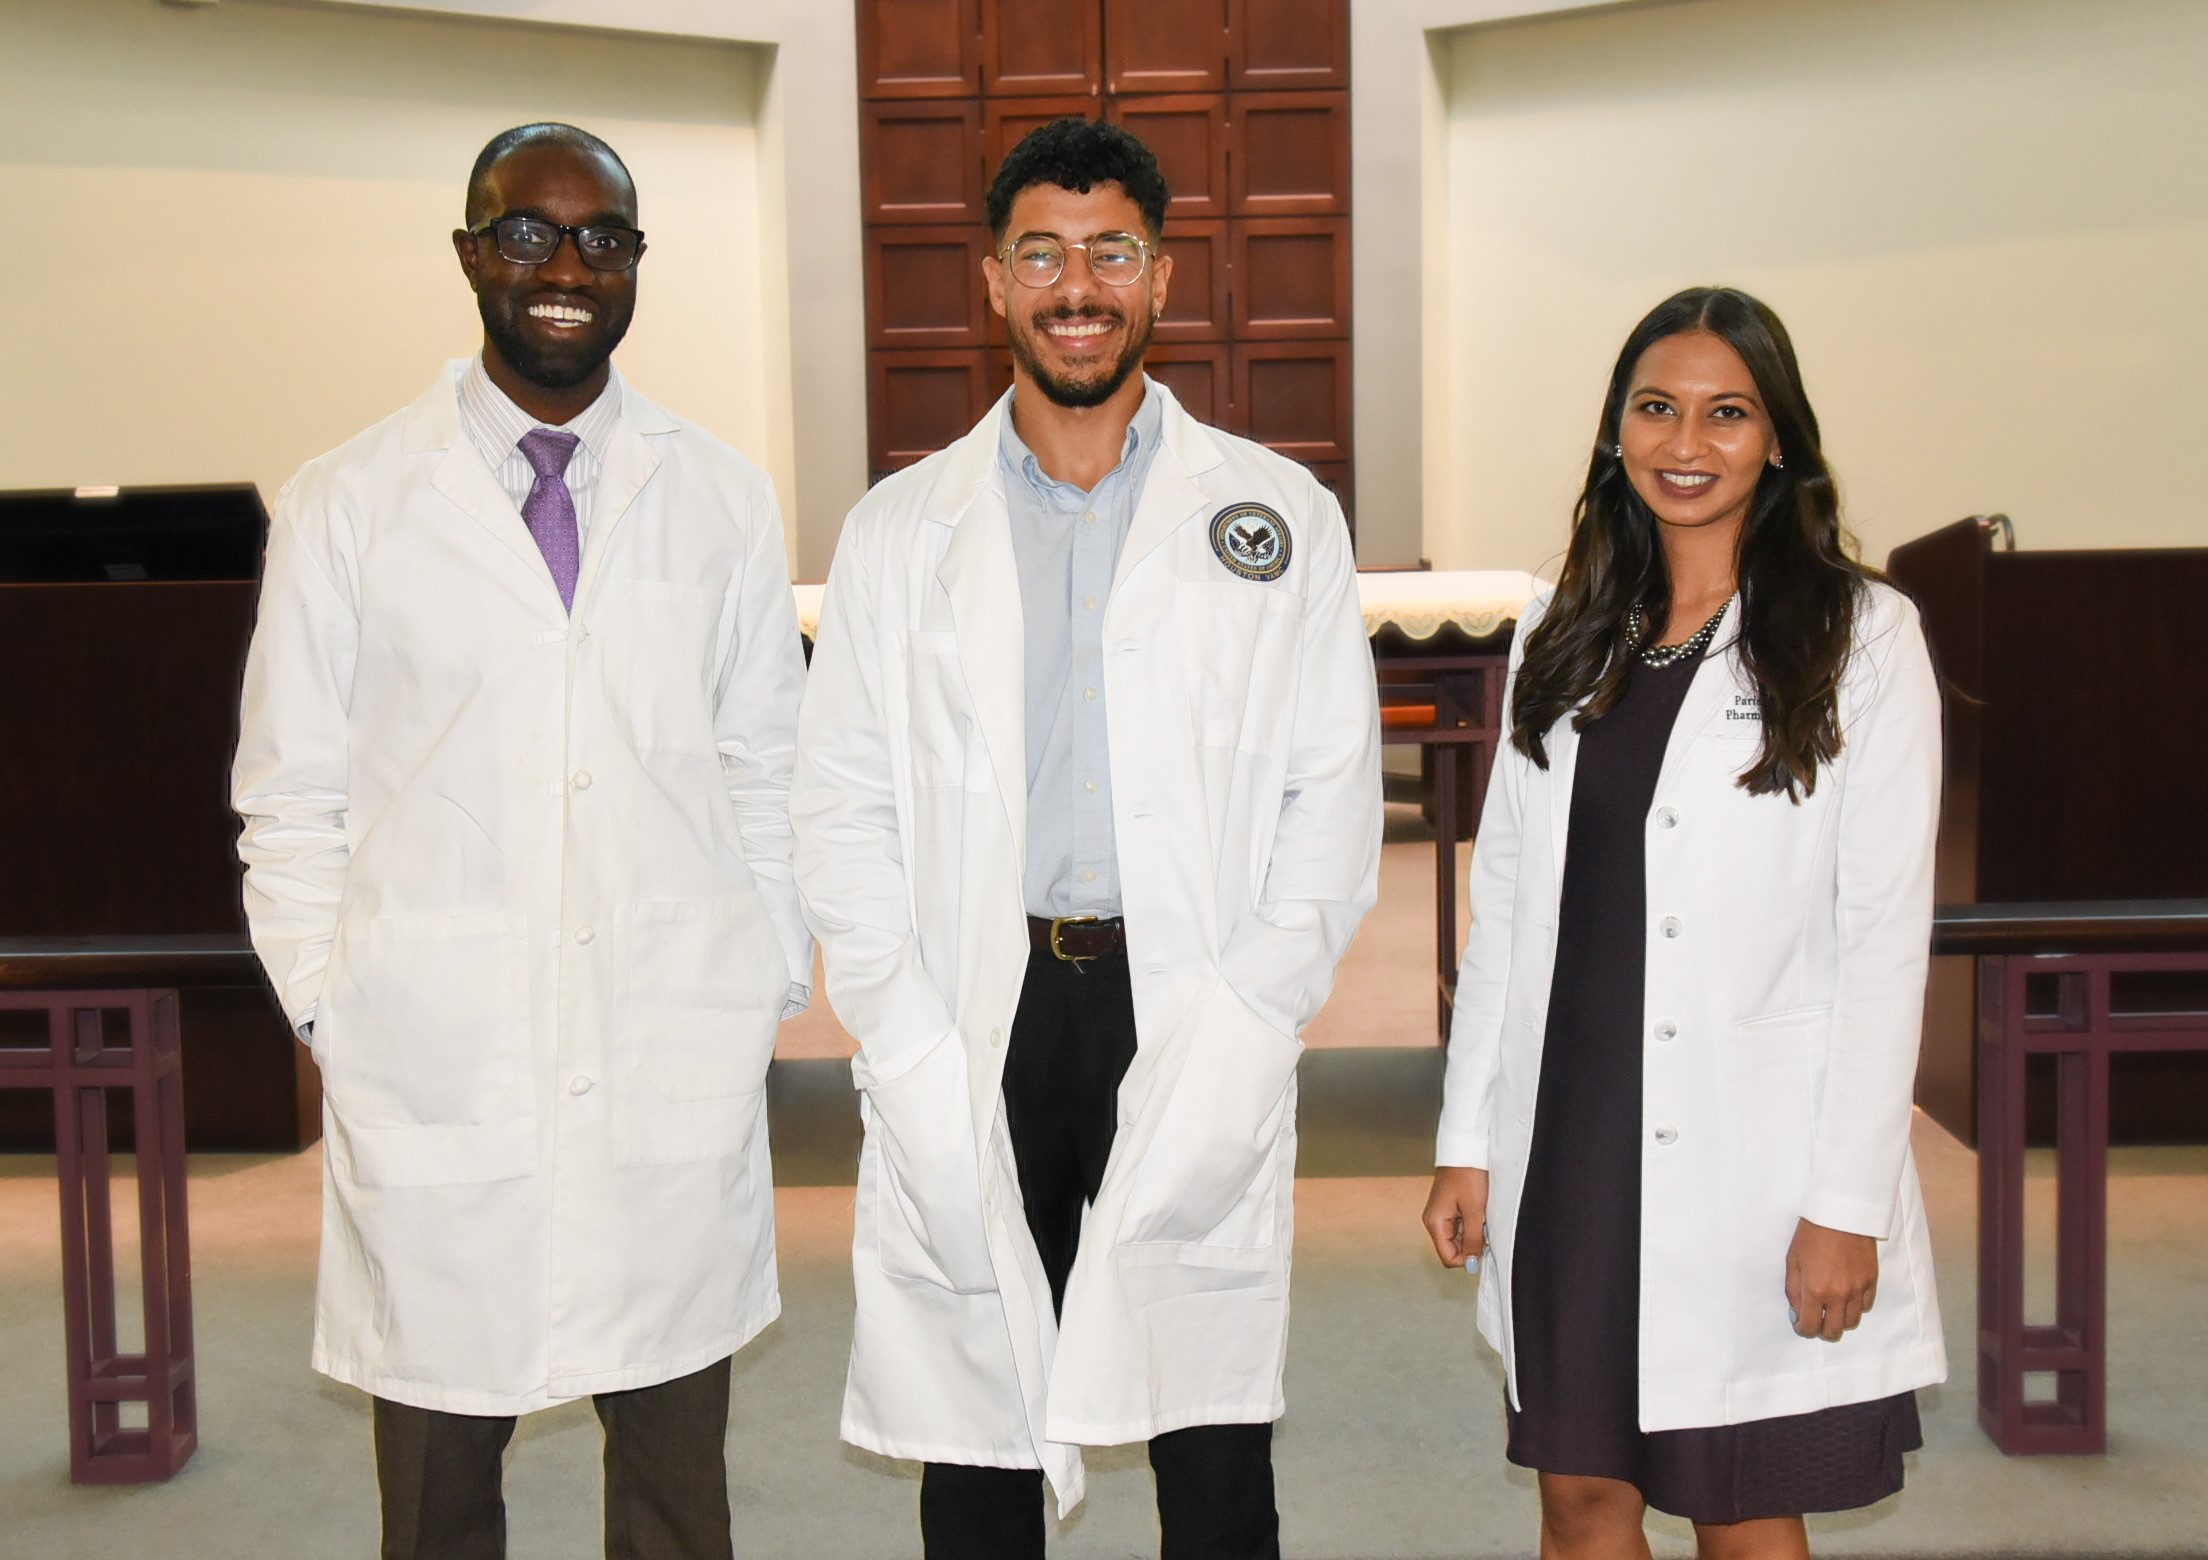 PGY2 infectious diseases pharmacy residents